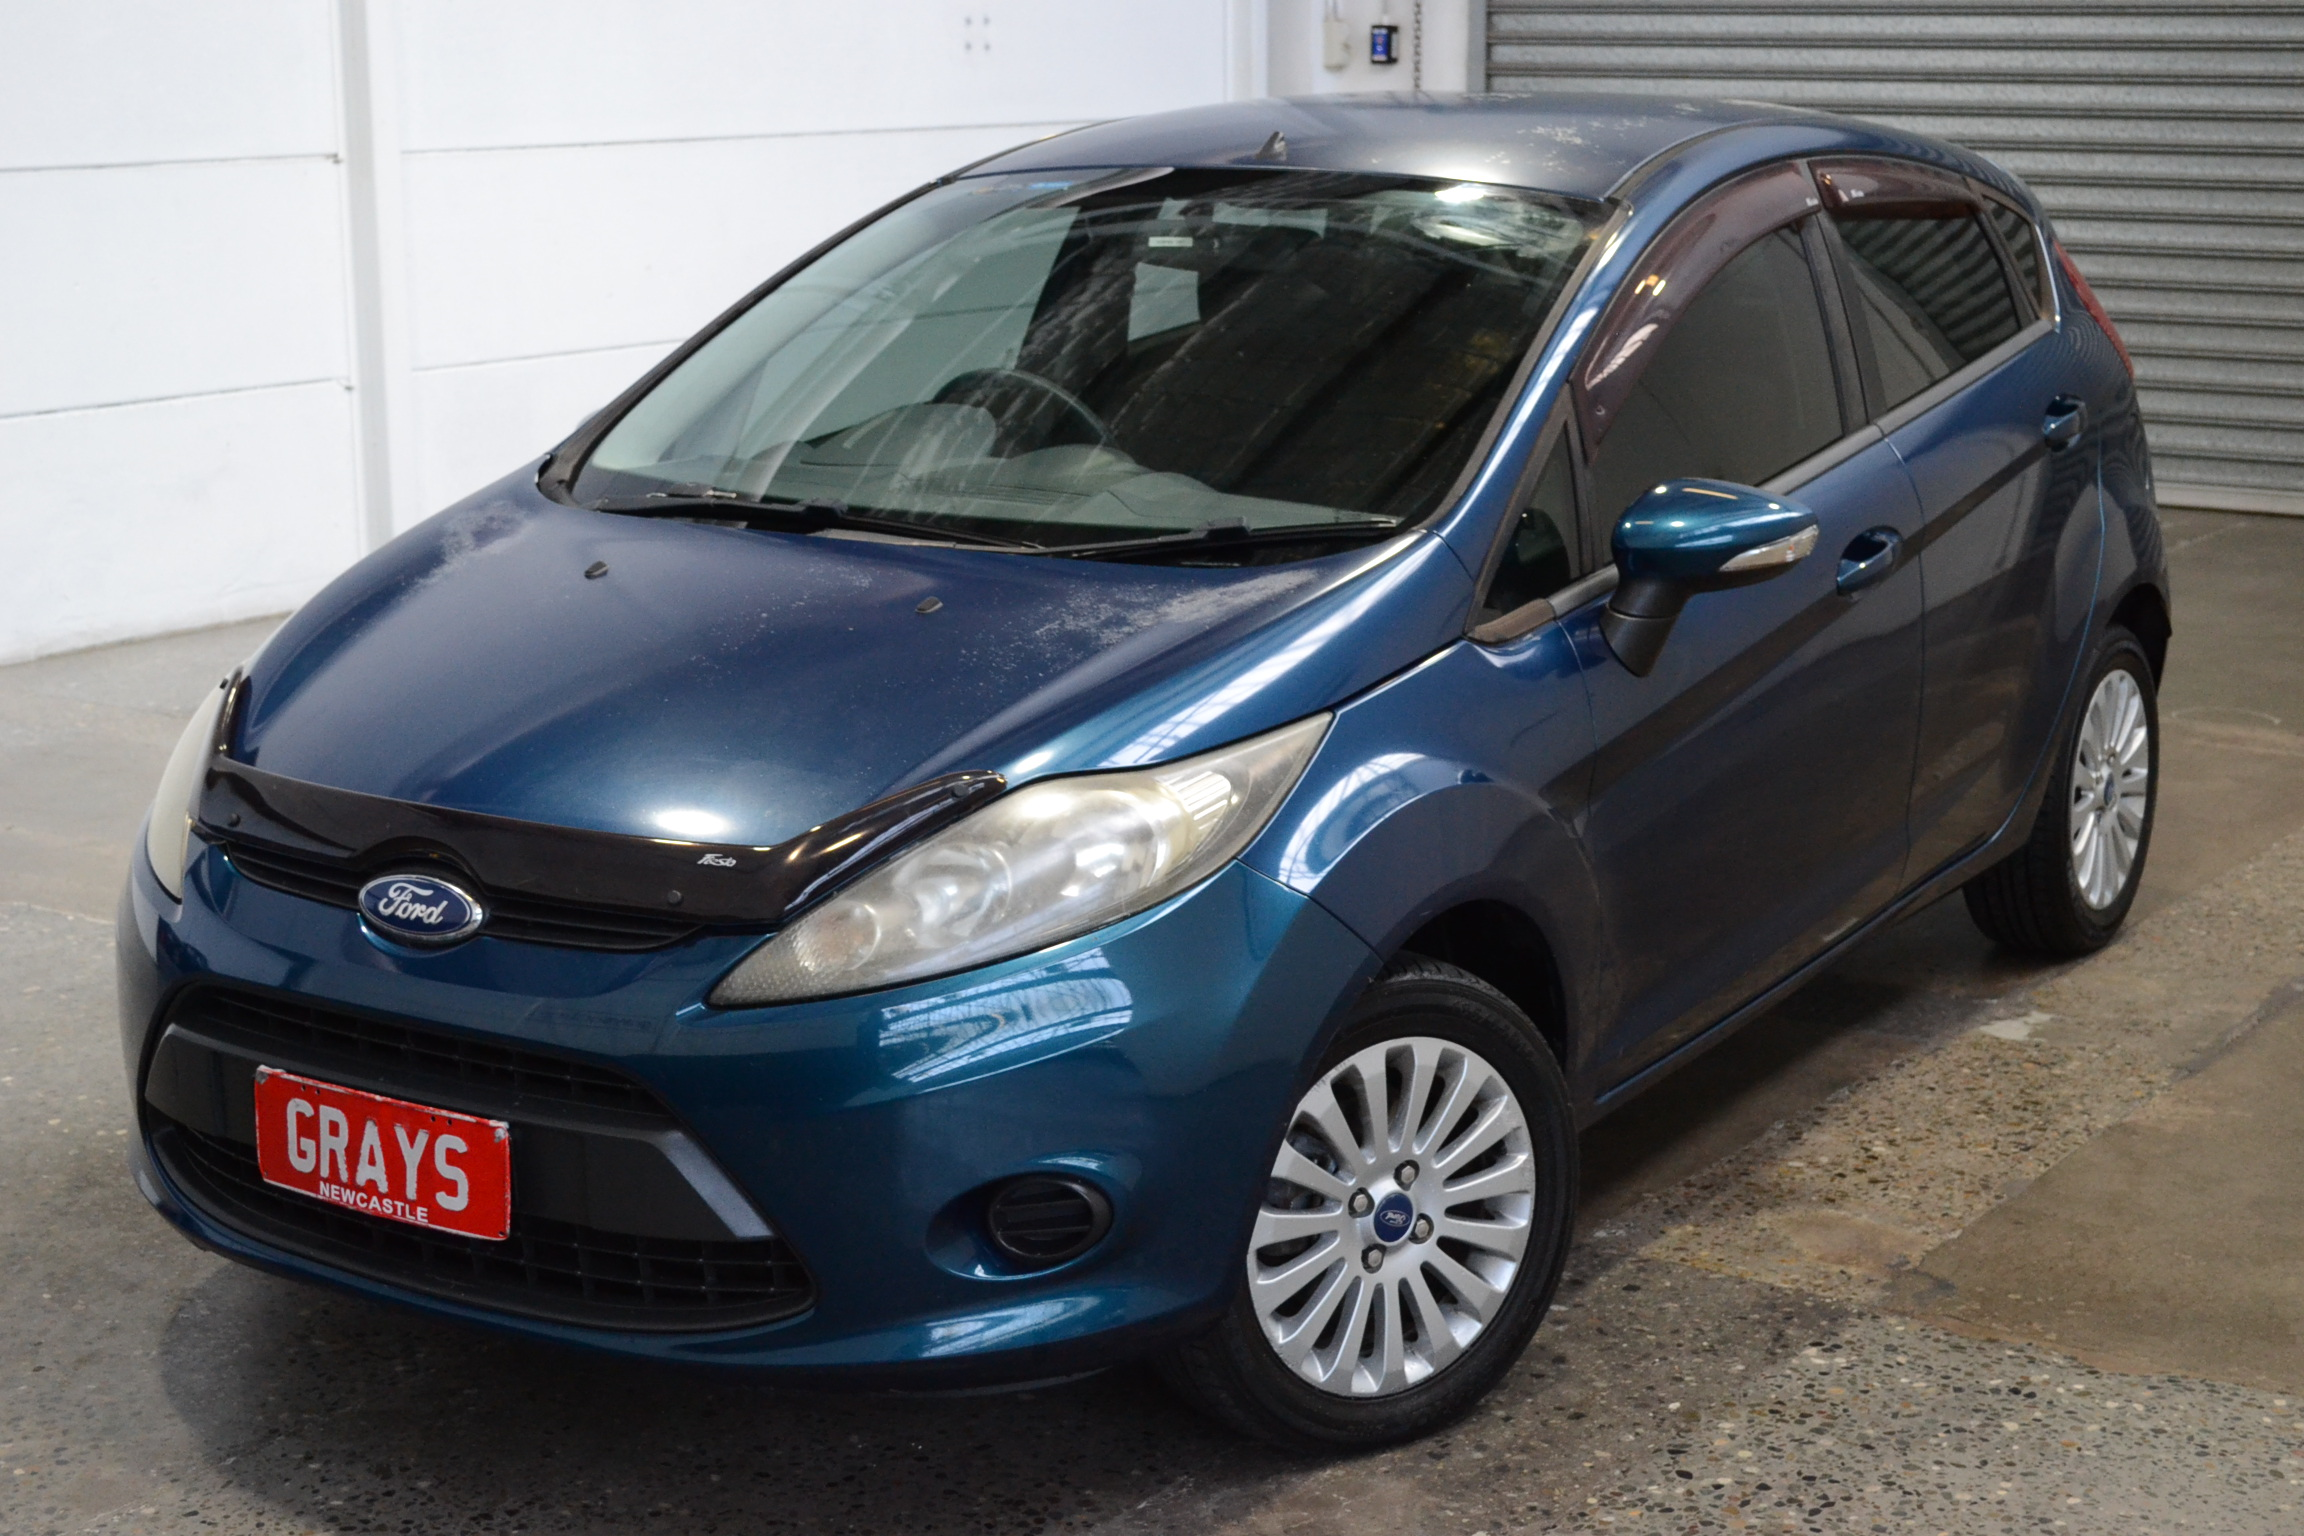 2011 Ford Fiesta LX WT Turbo Diesel Manual Hatchback